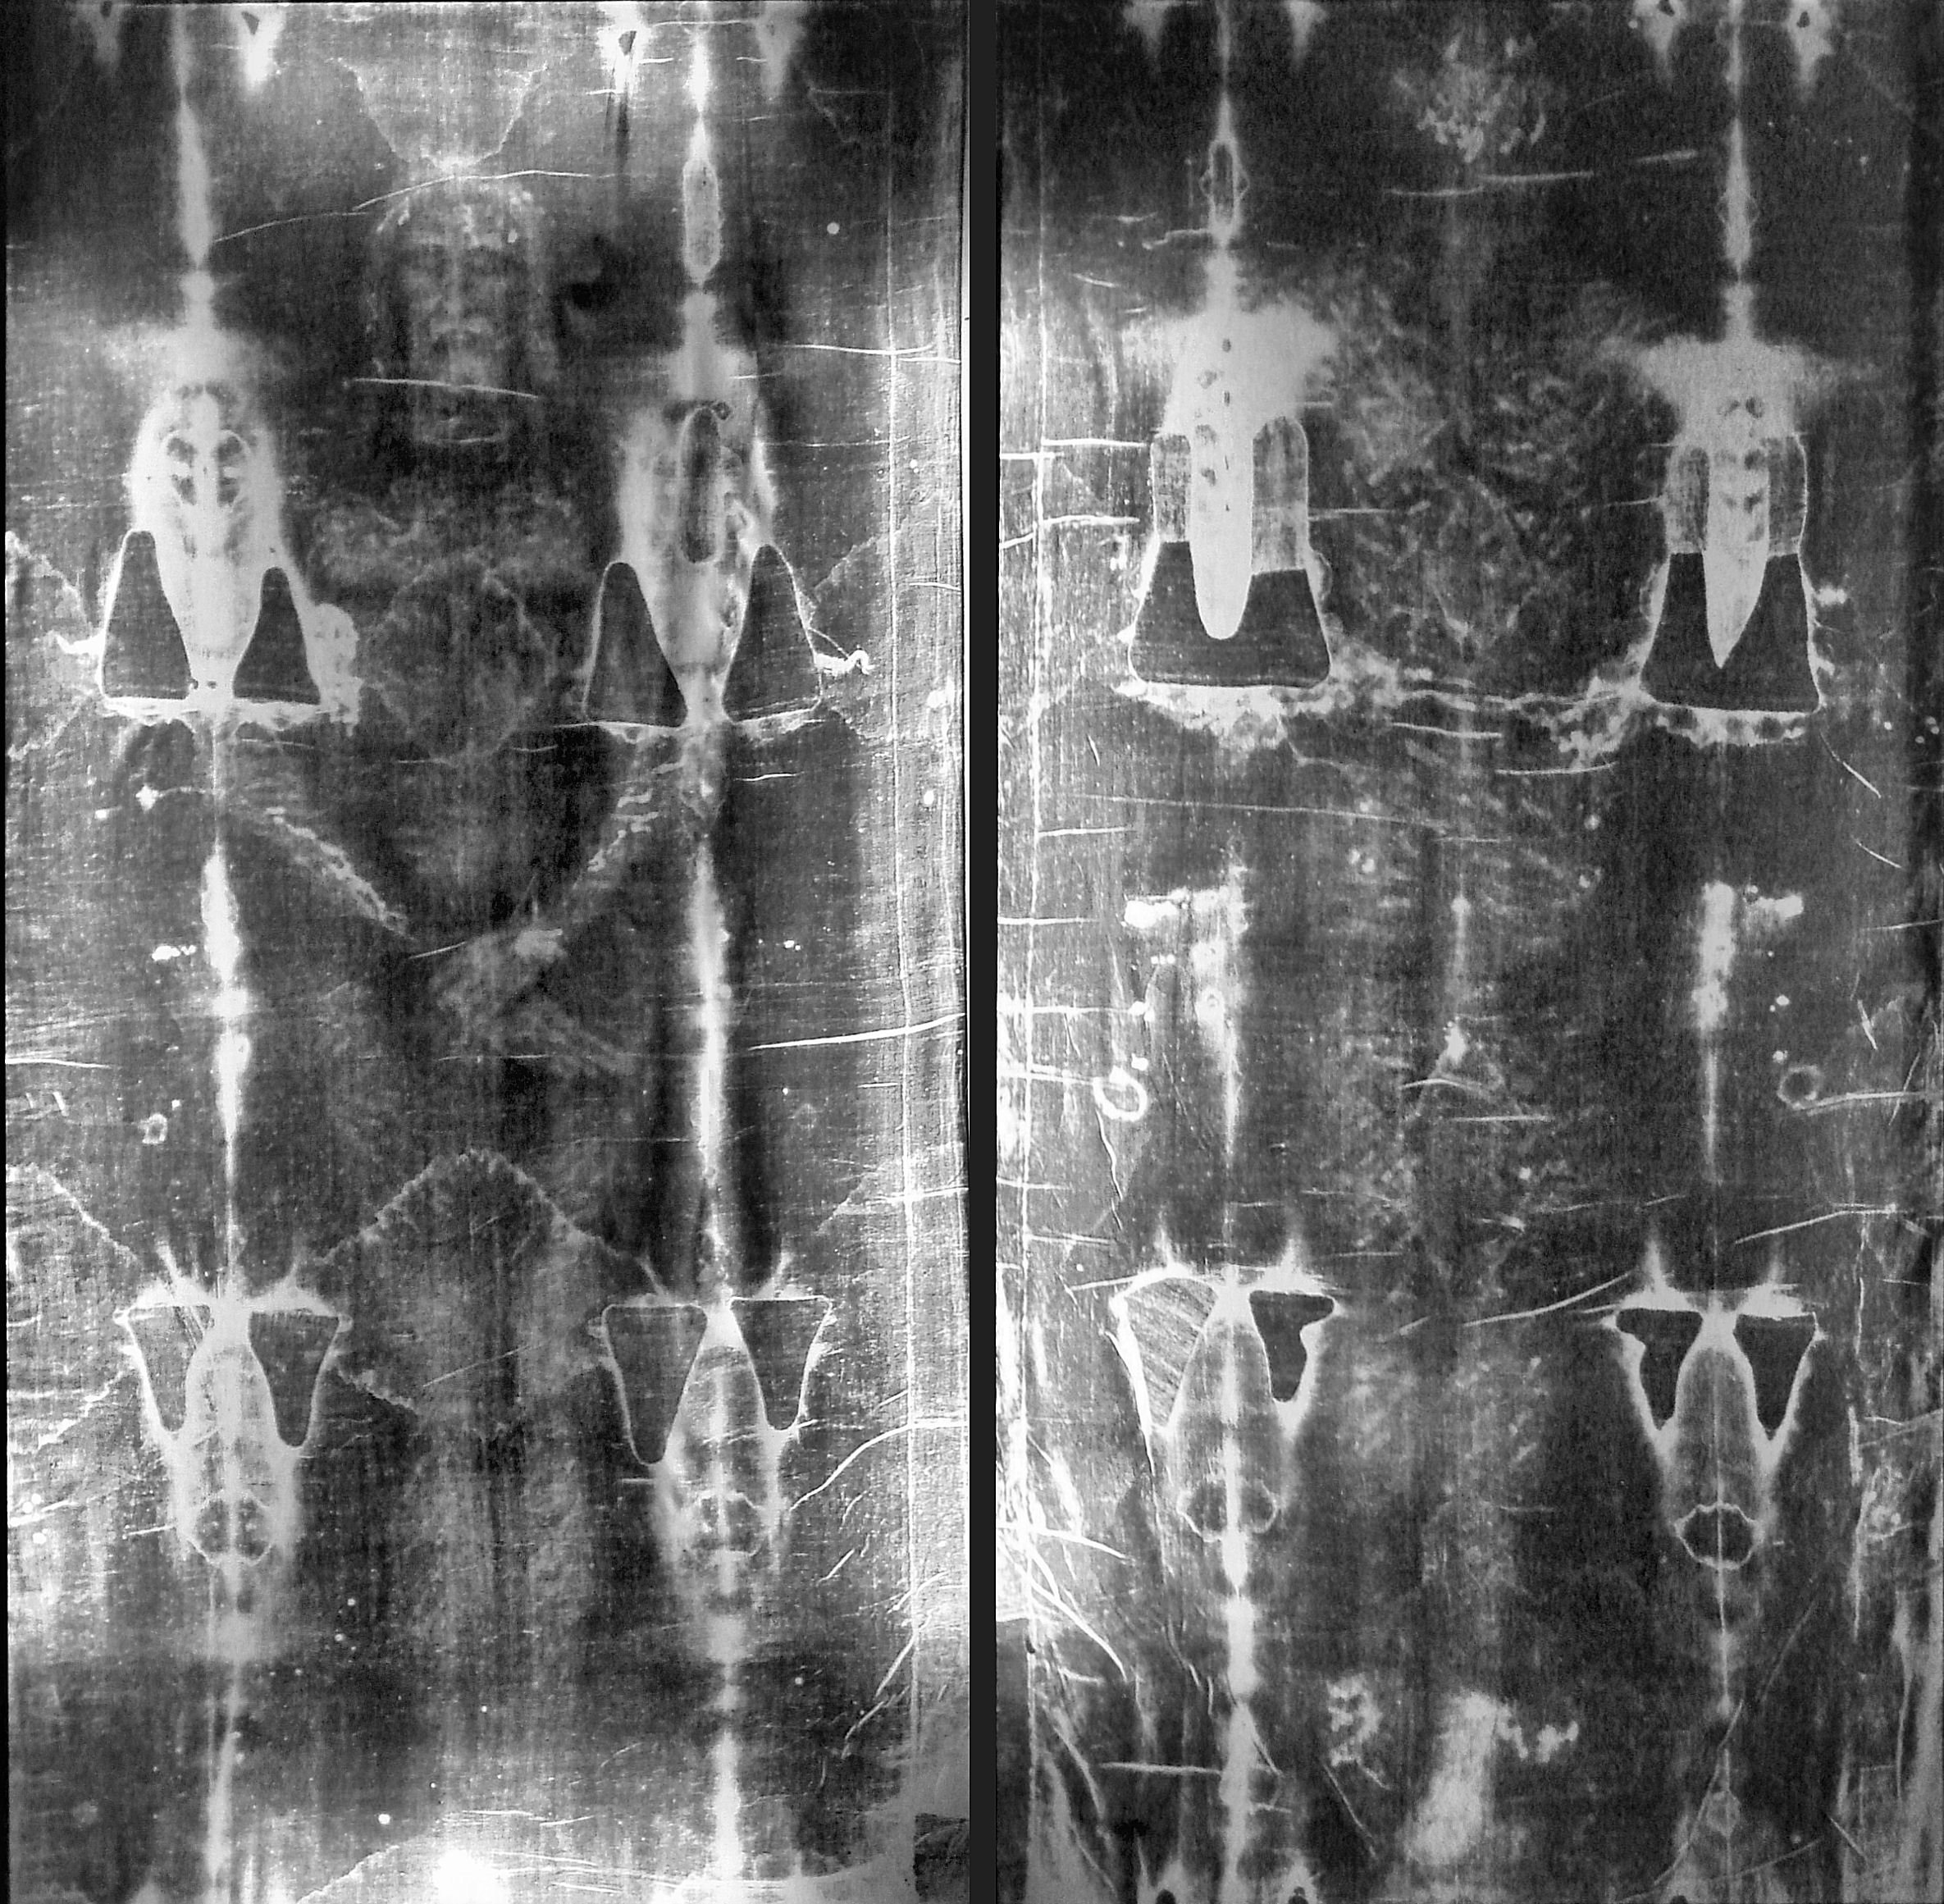 Shroud of turin carbon dating controversy meaning